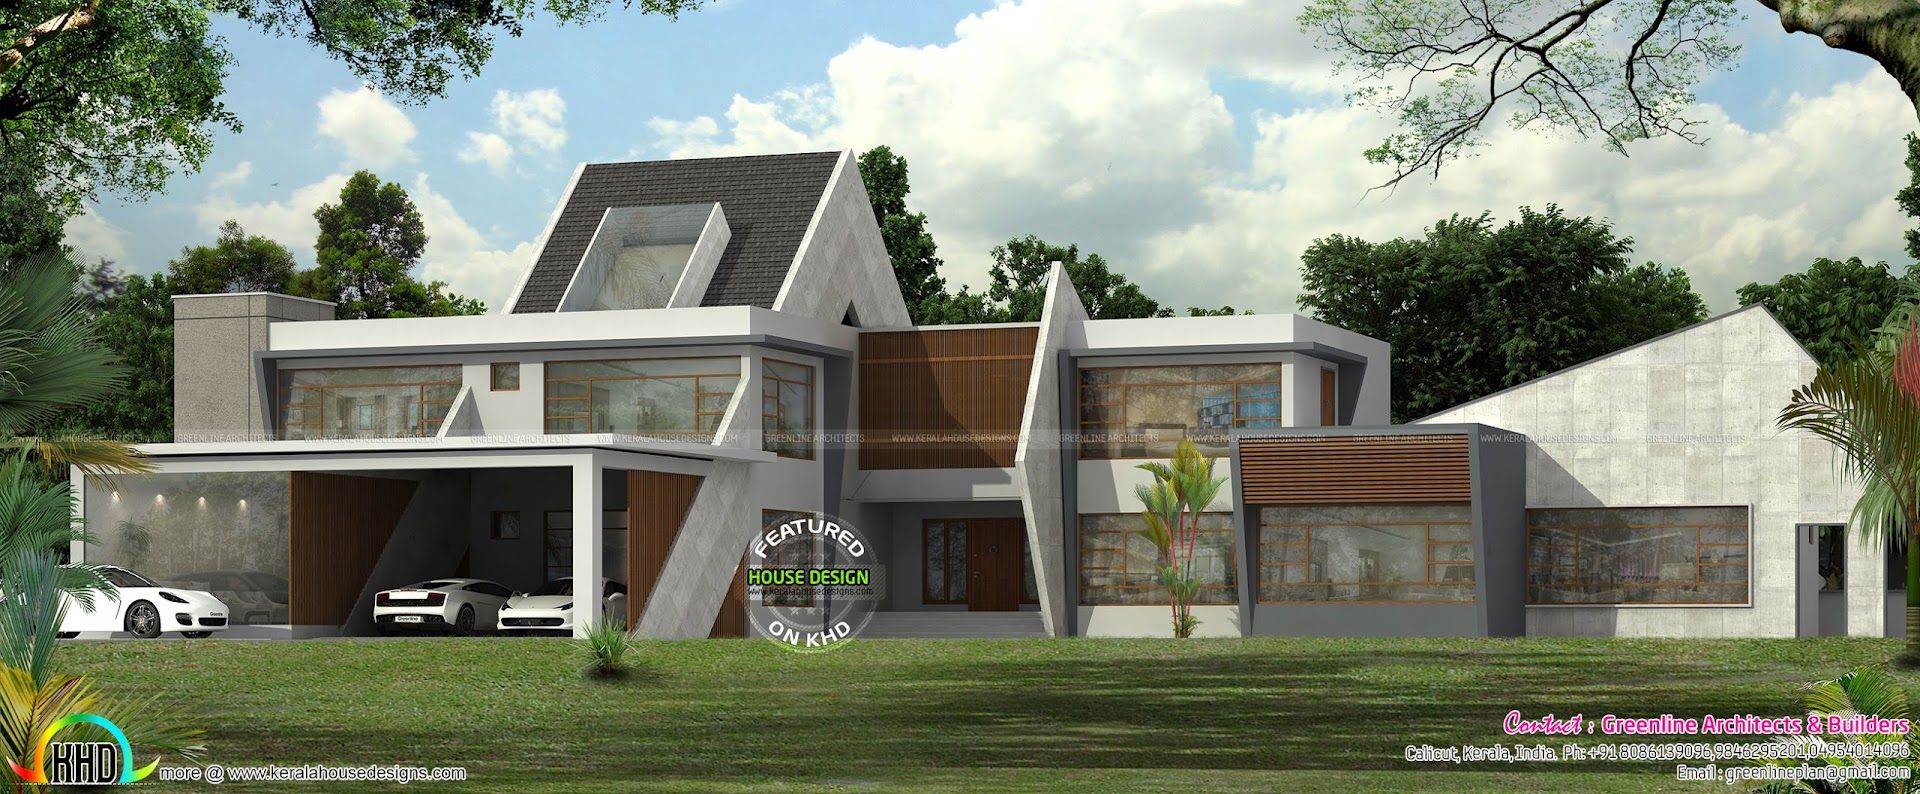 Ultra modern contemporary house in kerala kerala home design and floor plans - Contemporary house designs ...